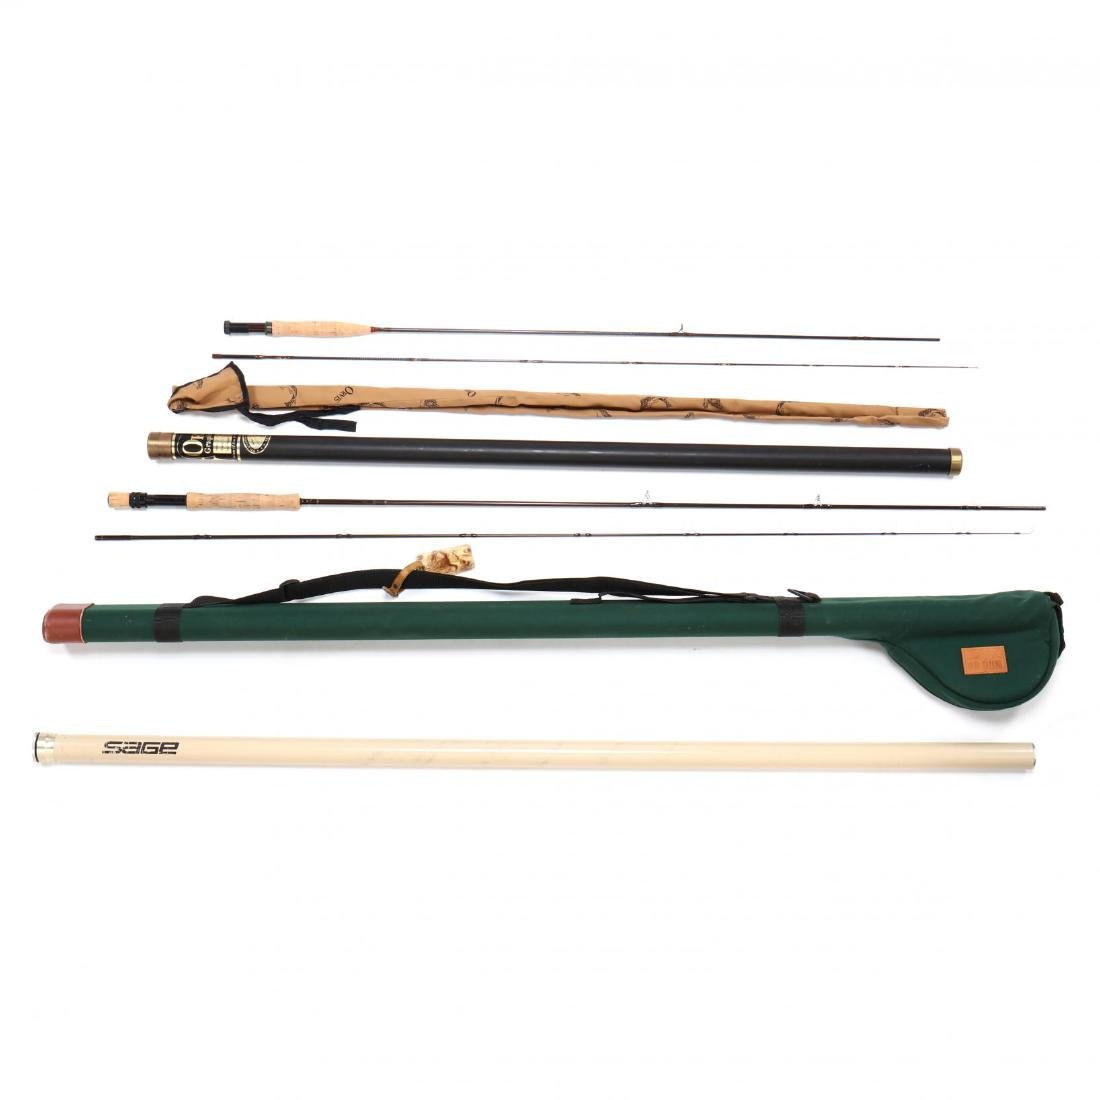 Orivs Graphite Fly Rod and Sage Graphite Fly Rod